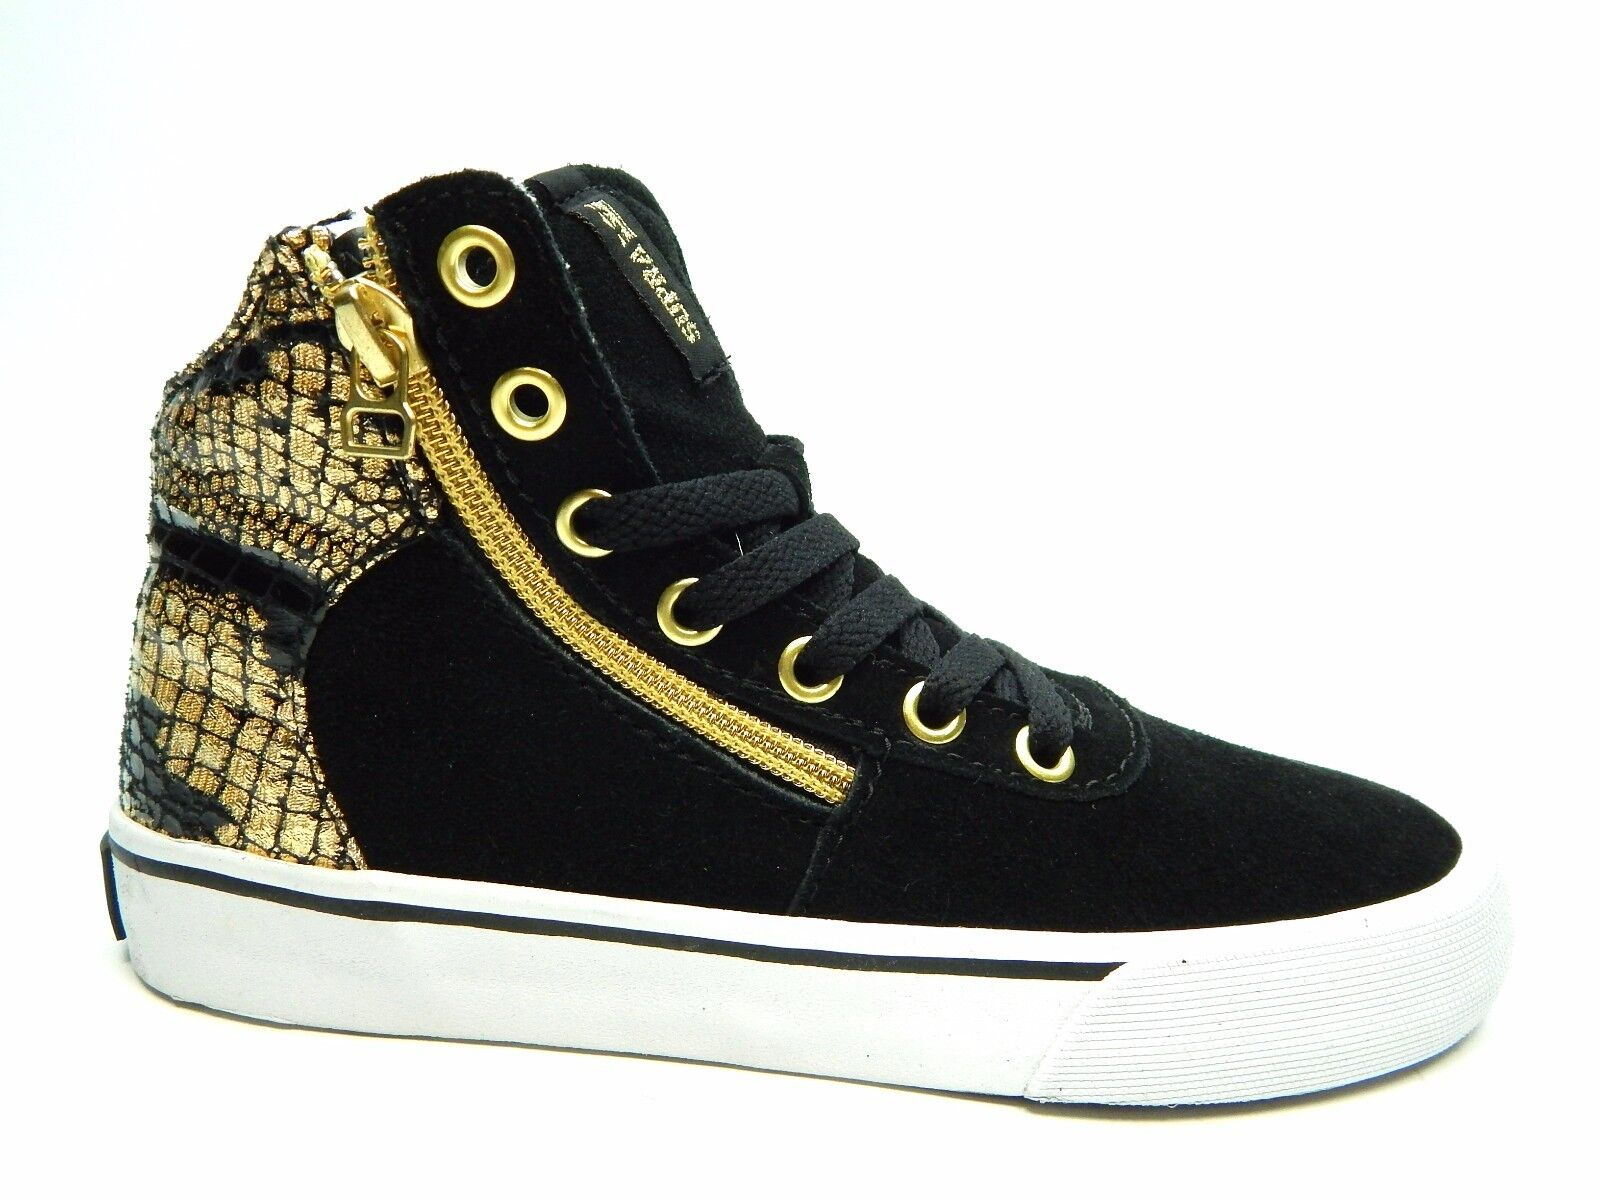 SUPRA CUTTLER BLACK GOLD WHITE SW35010 WOMEN SHOES SIZE 5